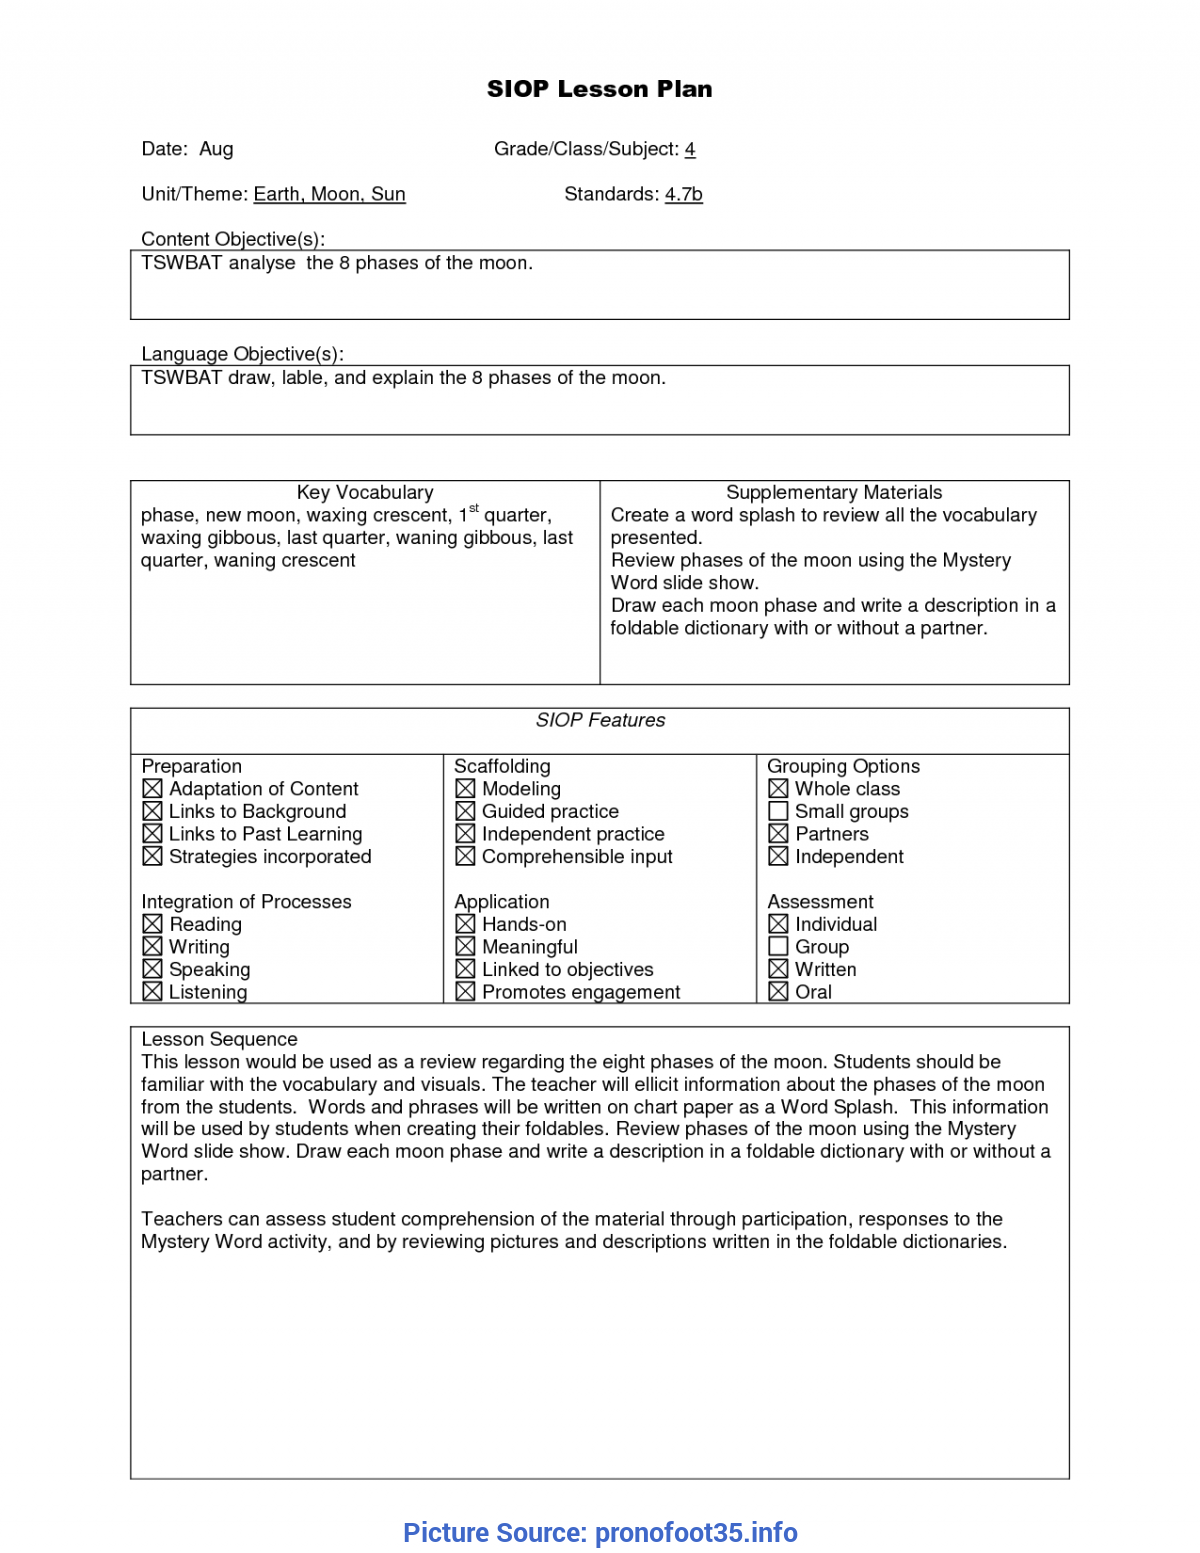 Regular Free Siop Lesson Plan Template 1 Siop Lesson Plan